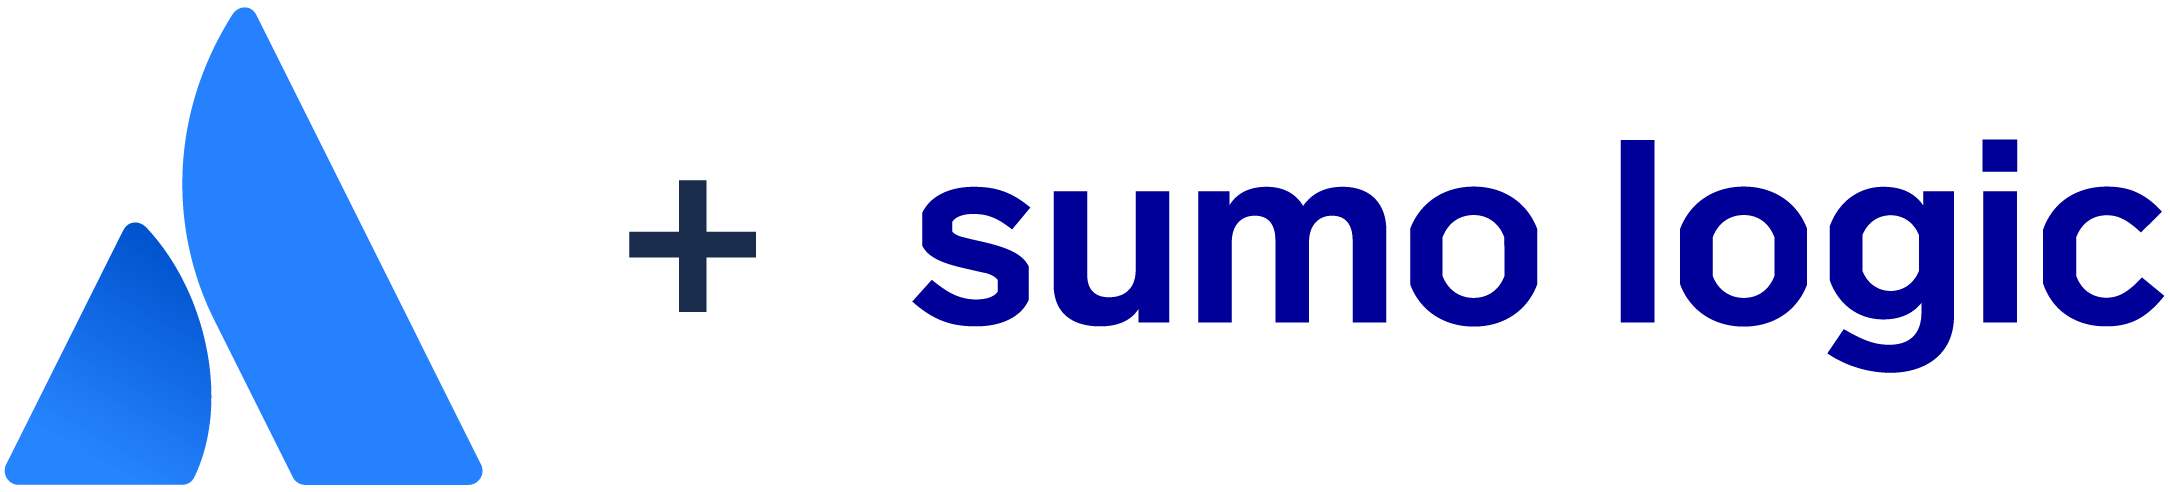 Atlassian logo + Sumo Logic logo